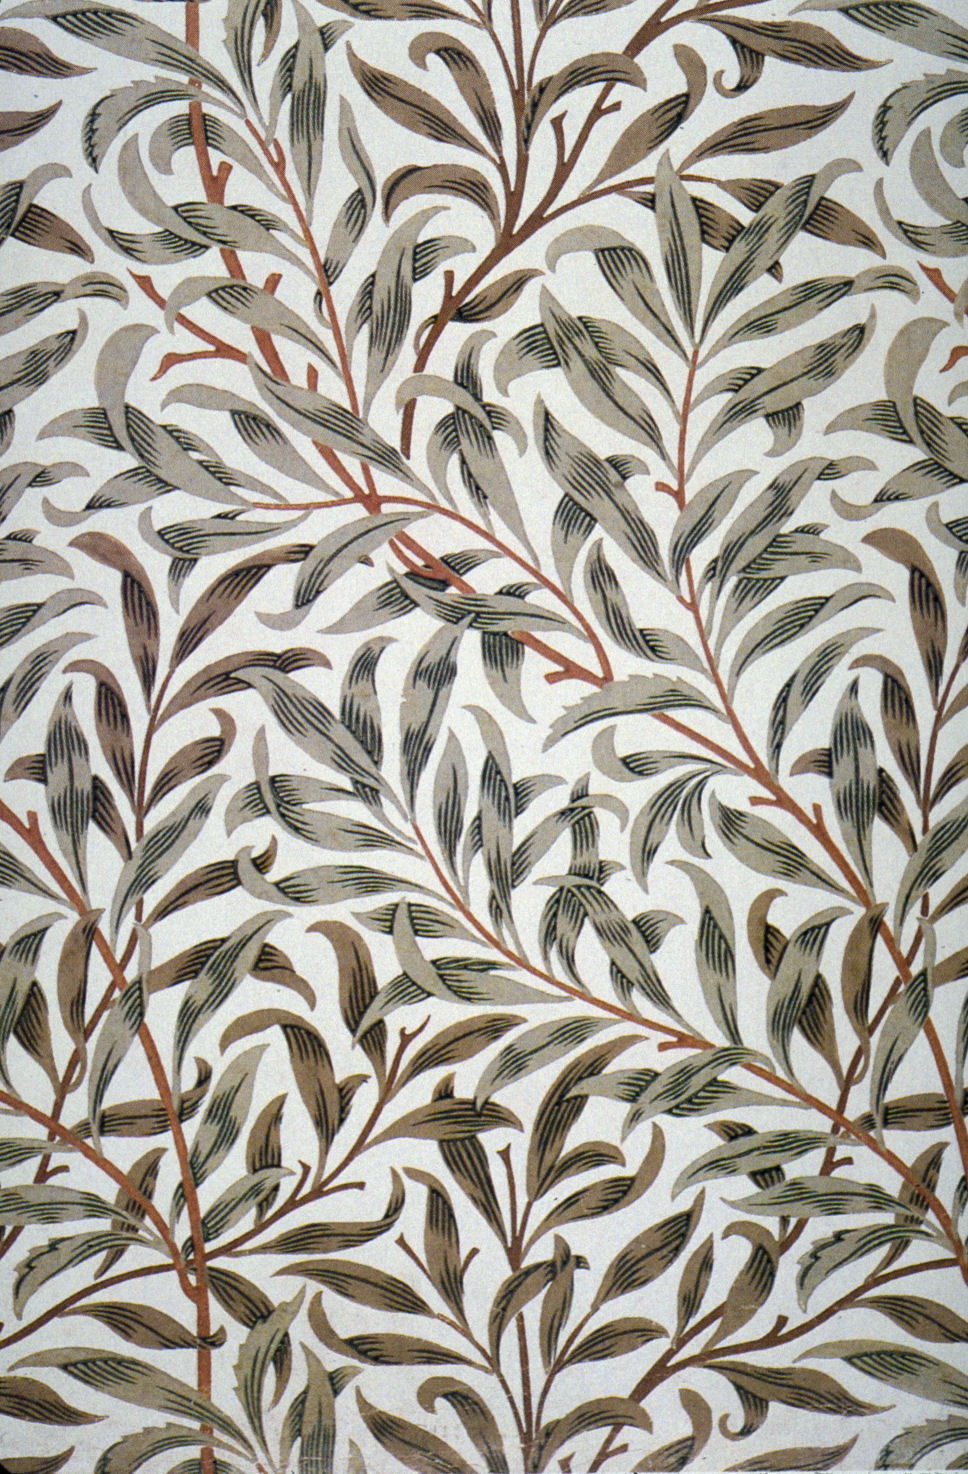 bajuz:  William Morris, Willow Bough, 1887